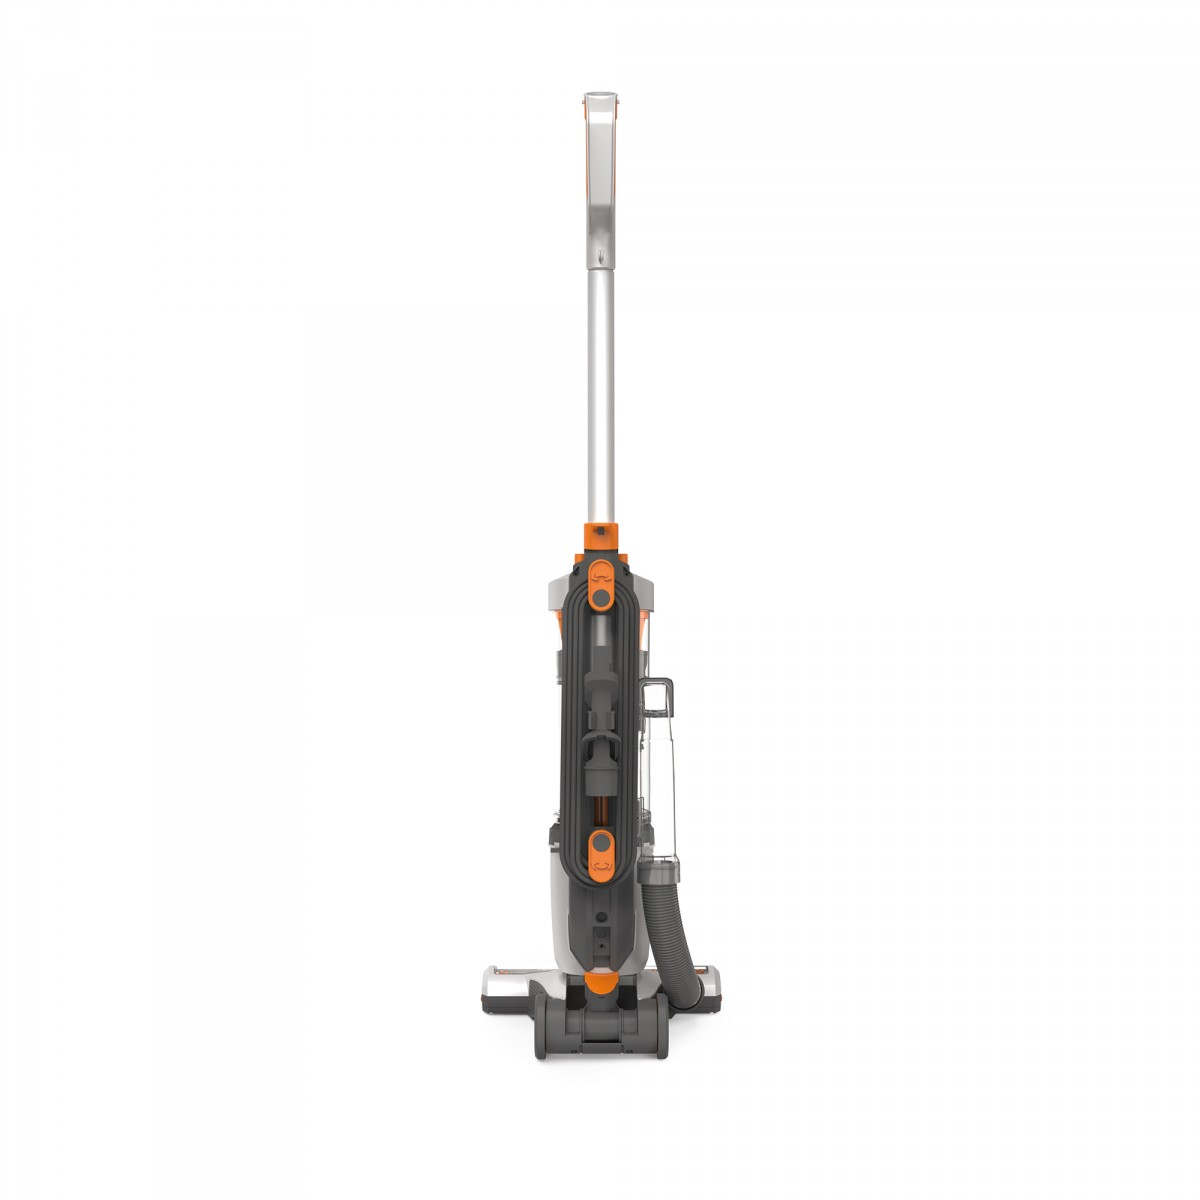 Air 3 Compact Upright Vacuum Cleaner